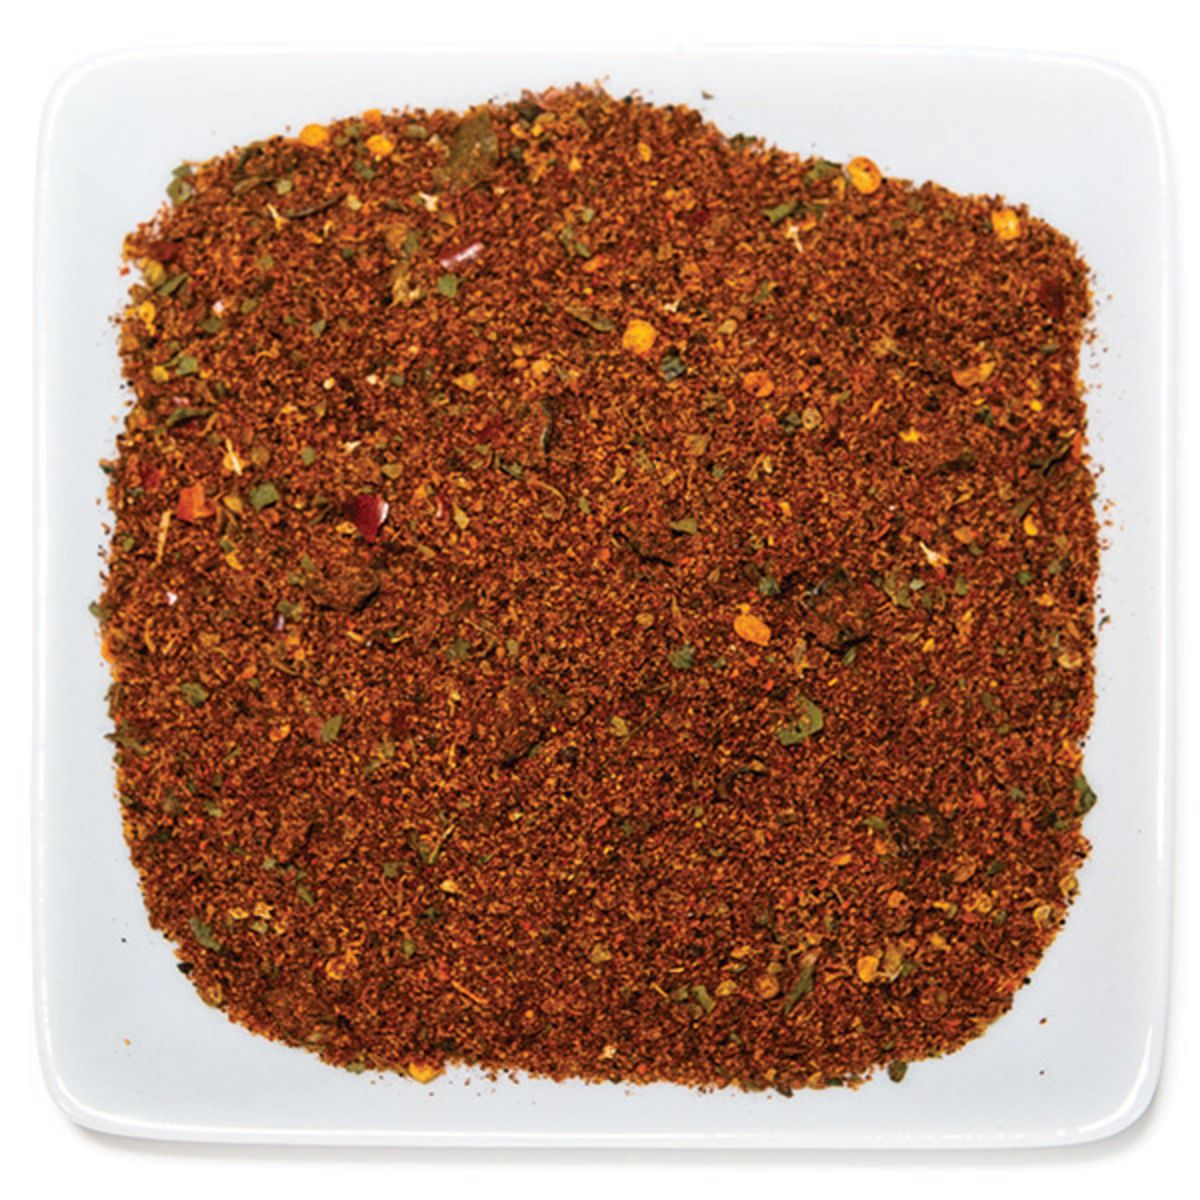 Texas Red Spice, 4 ozs by weight [3/4 cup by volume]